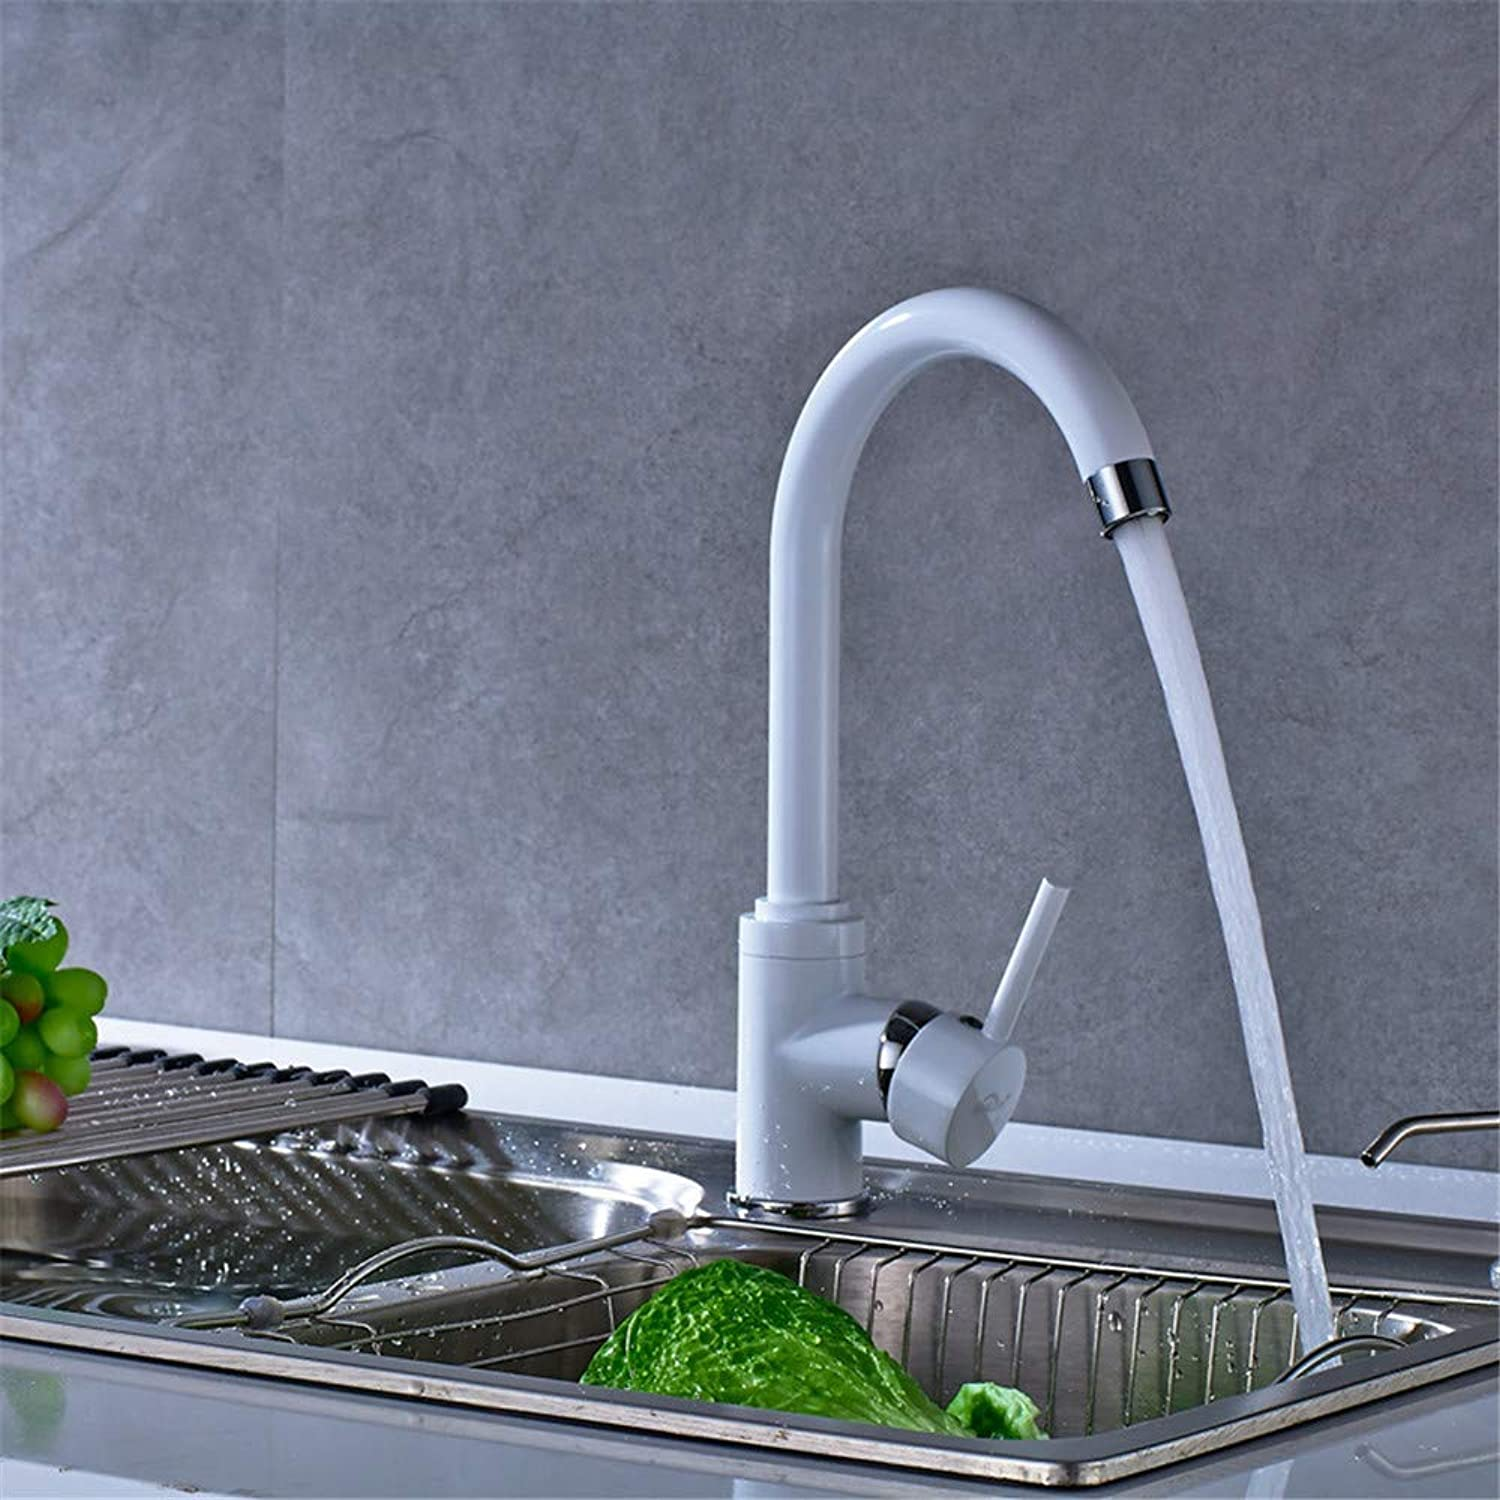 Copper Kitchen Faucet White Baking Paint Cold Water Mixer redating Kitchen Sink Faucet Single Handle 360 Degrees redation